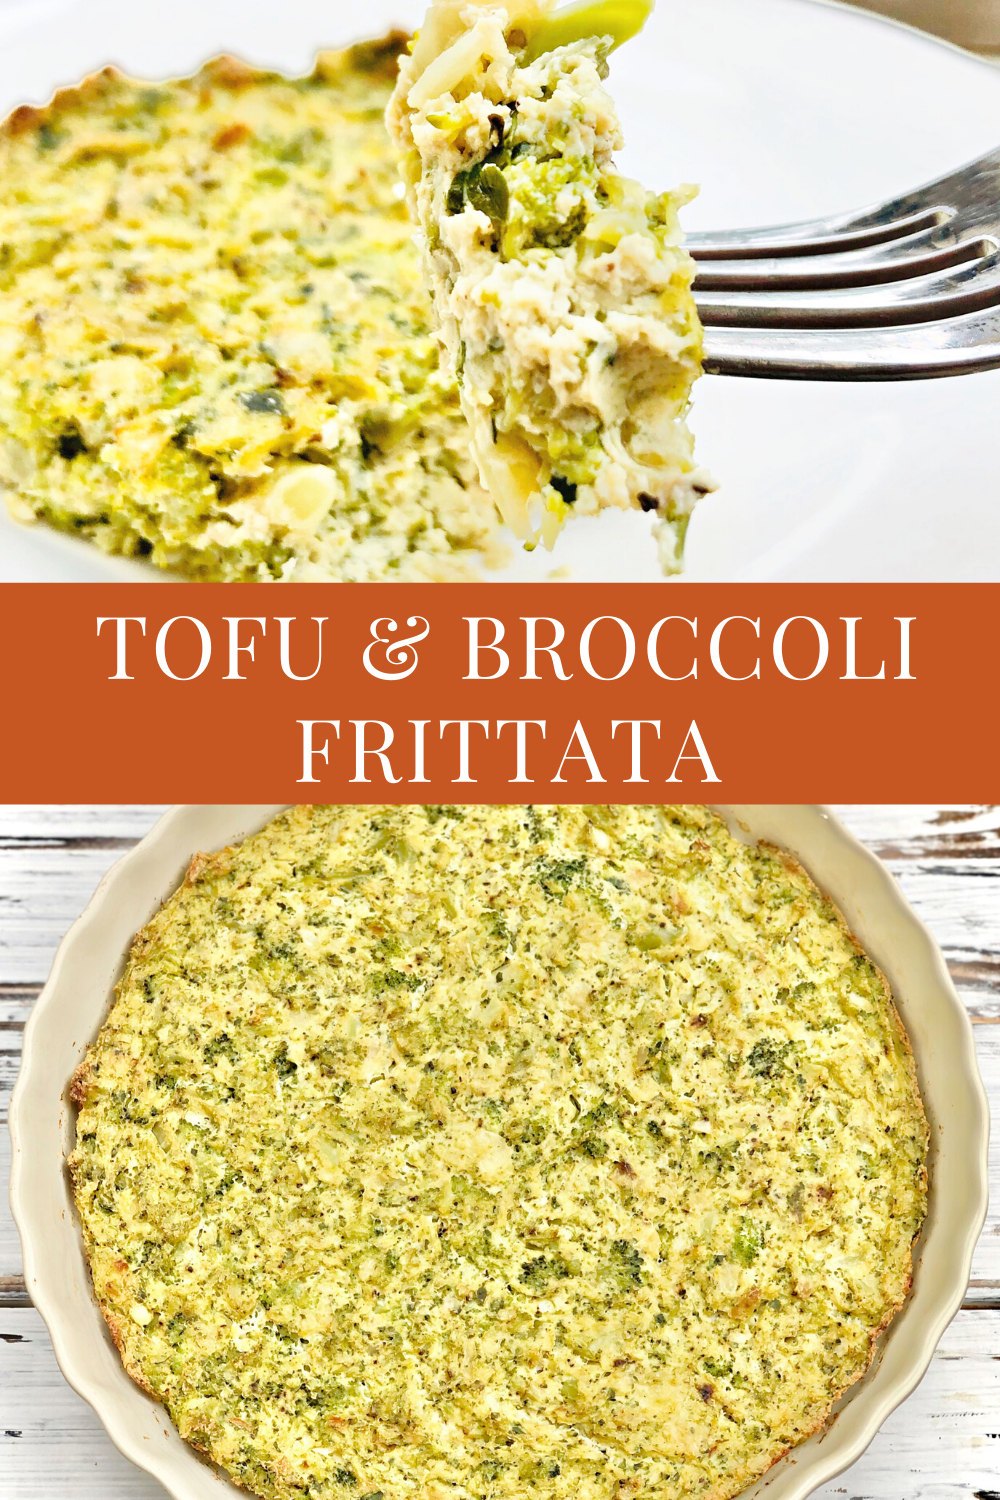 Tofu and Broccoli Frittata - A plant-based broccoli frittata recipe that is easy to make ahead and perfect for breakfast, brunch, lunch, or dinner. #veganfrittata #crustlessquiche #thiswifecooksrecipes #veganbreakfast via @thiswifecooks